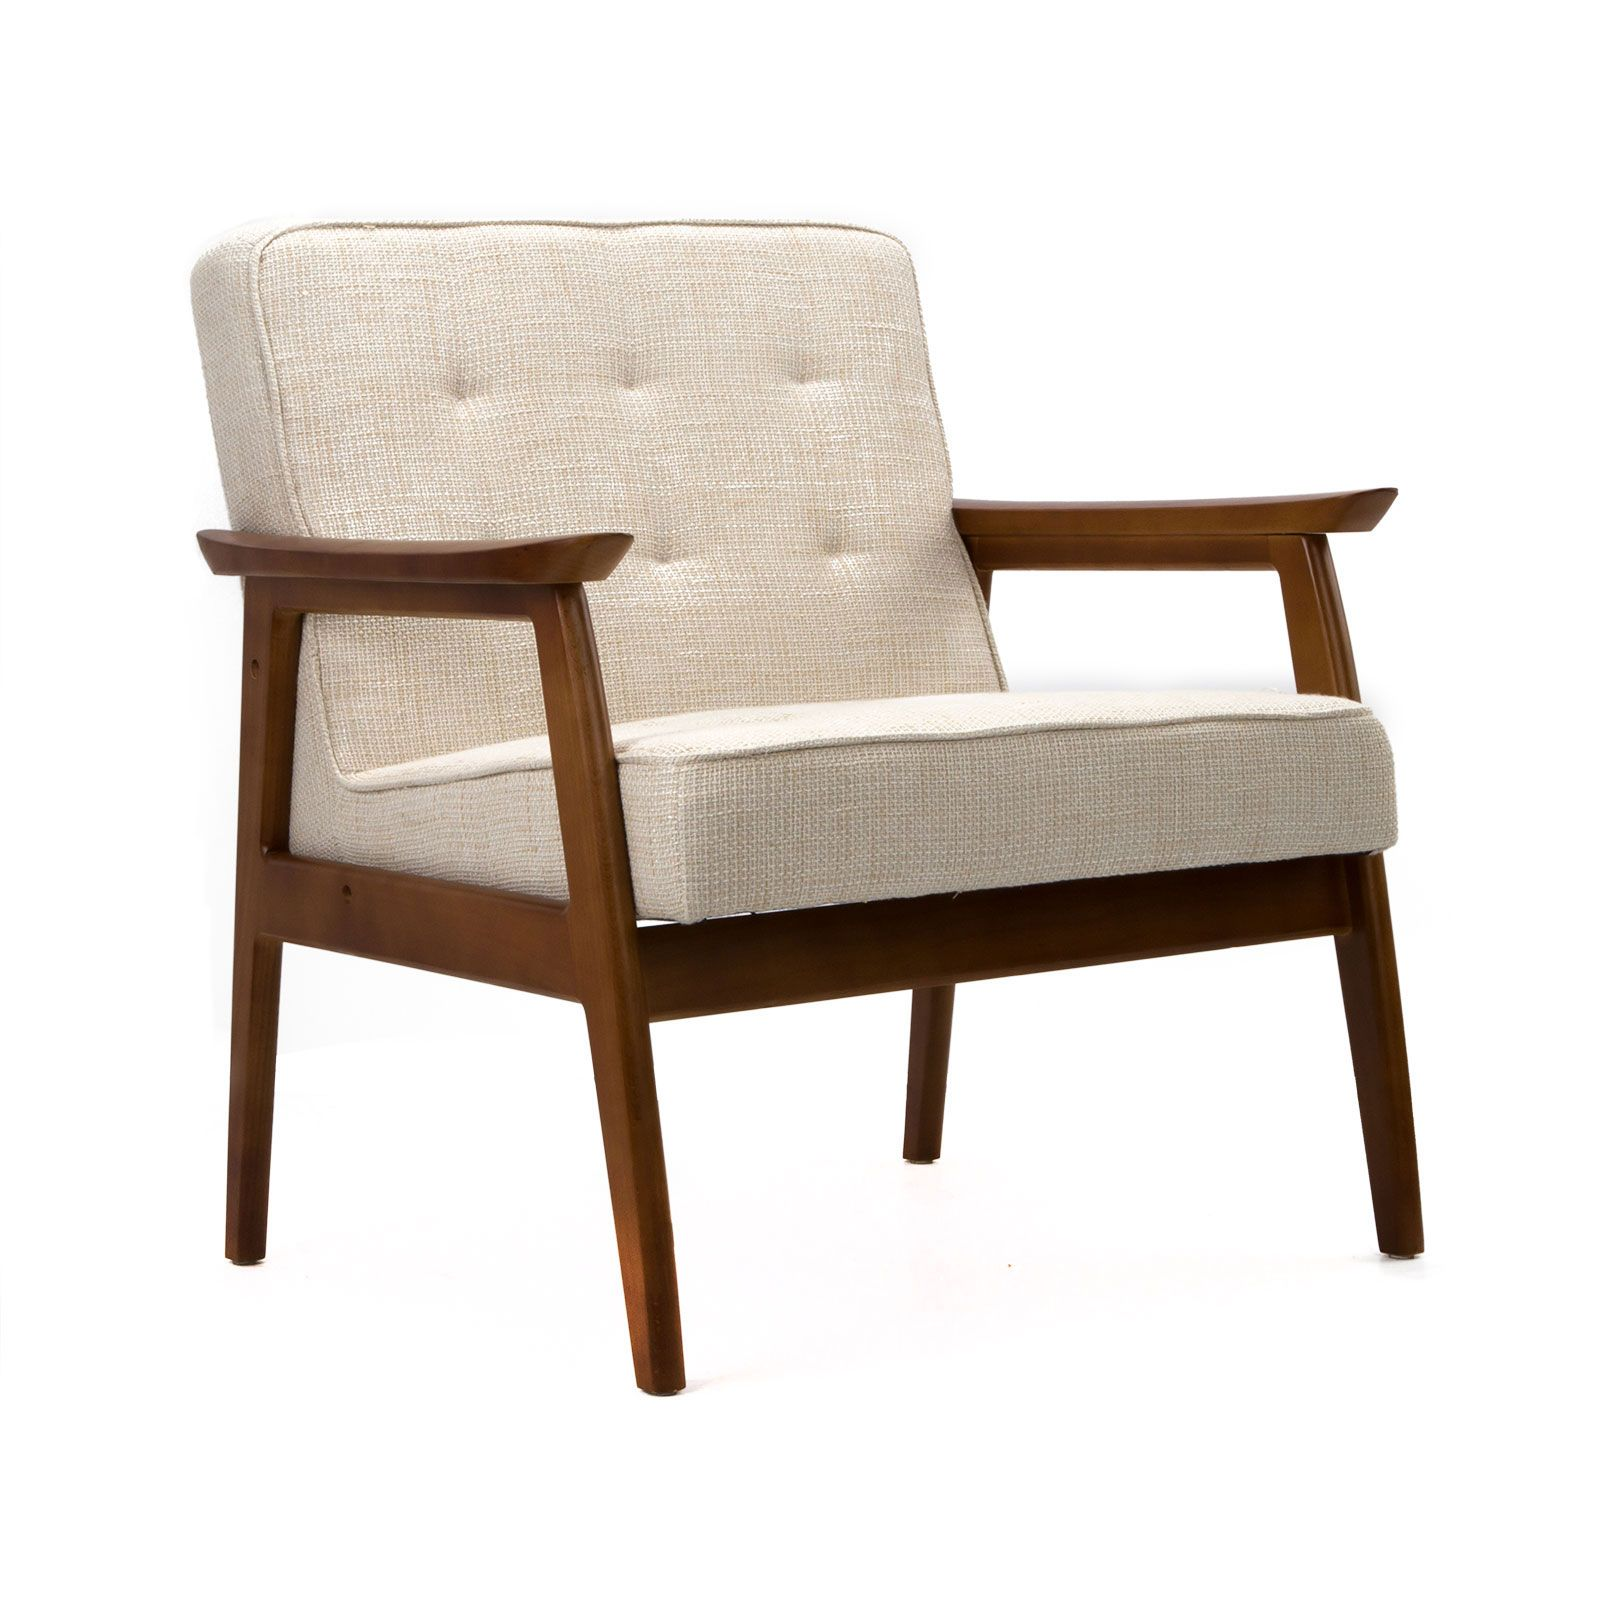 MidCentury Walnut Lounge Chair in Cream